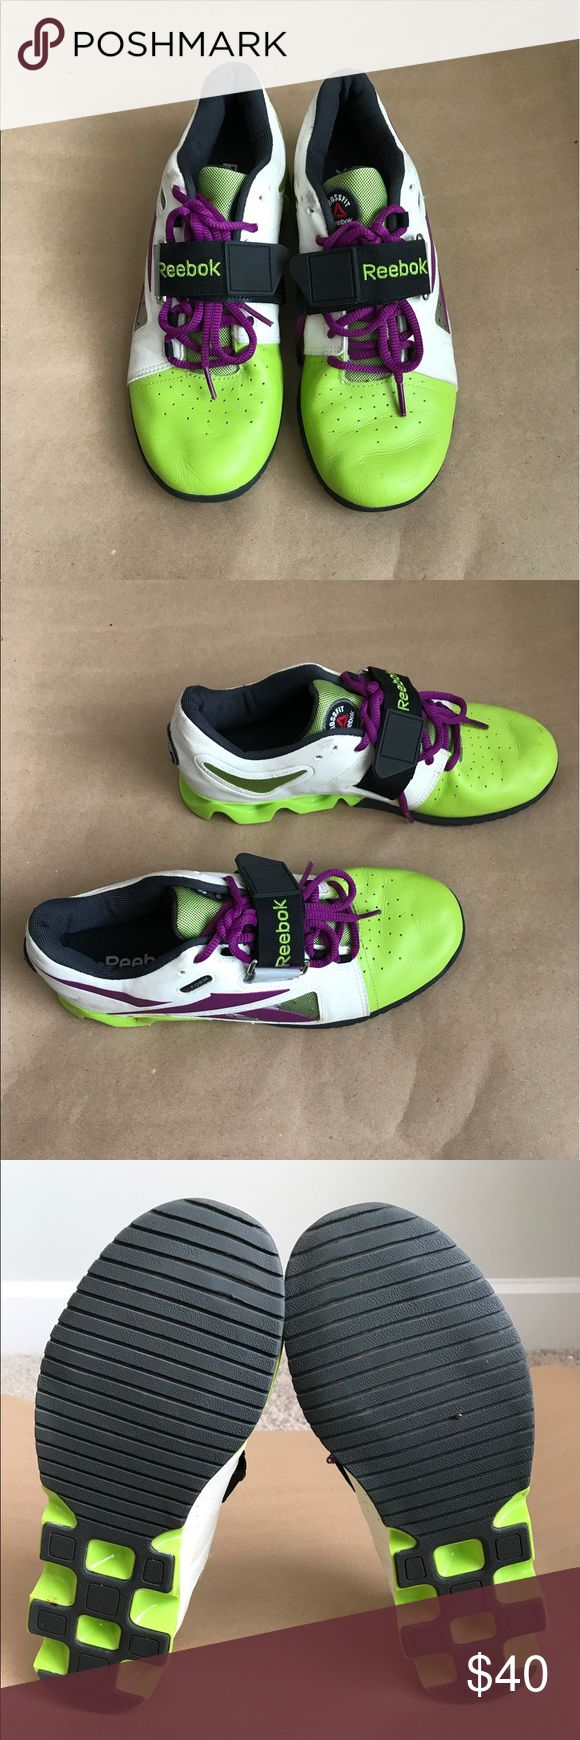 Lifting shoes Reebok lifting shoes, great for crossfit, very light Reebok Shoes Athletic Shoes